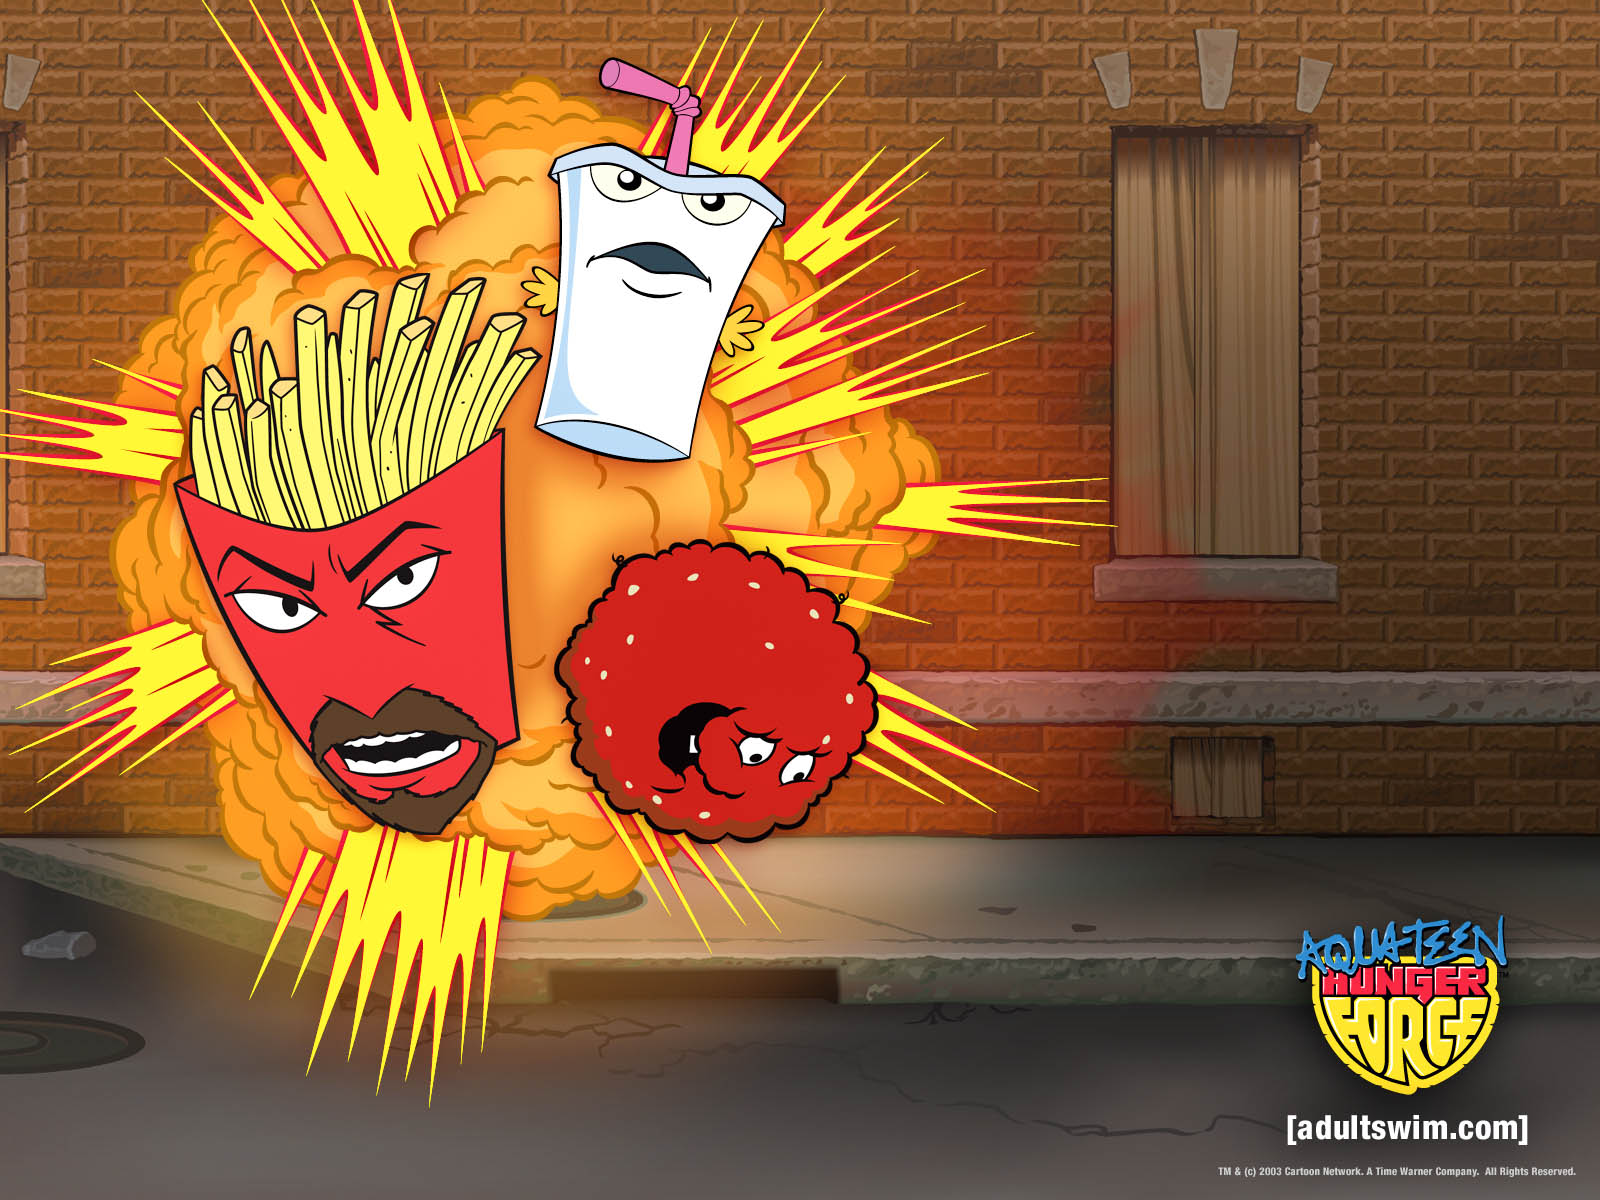 Can aqua teen unger force